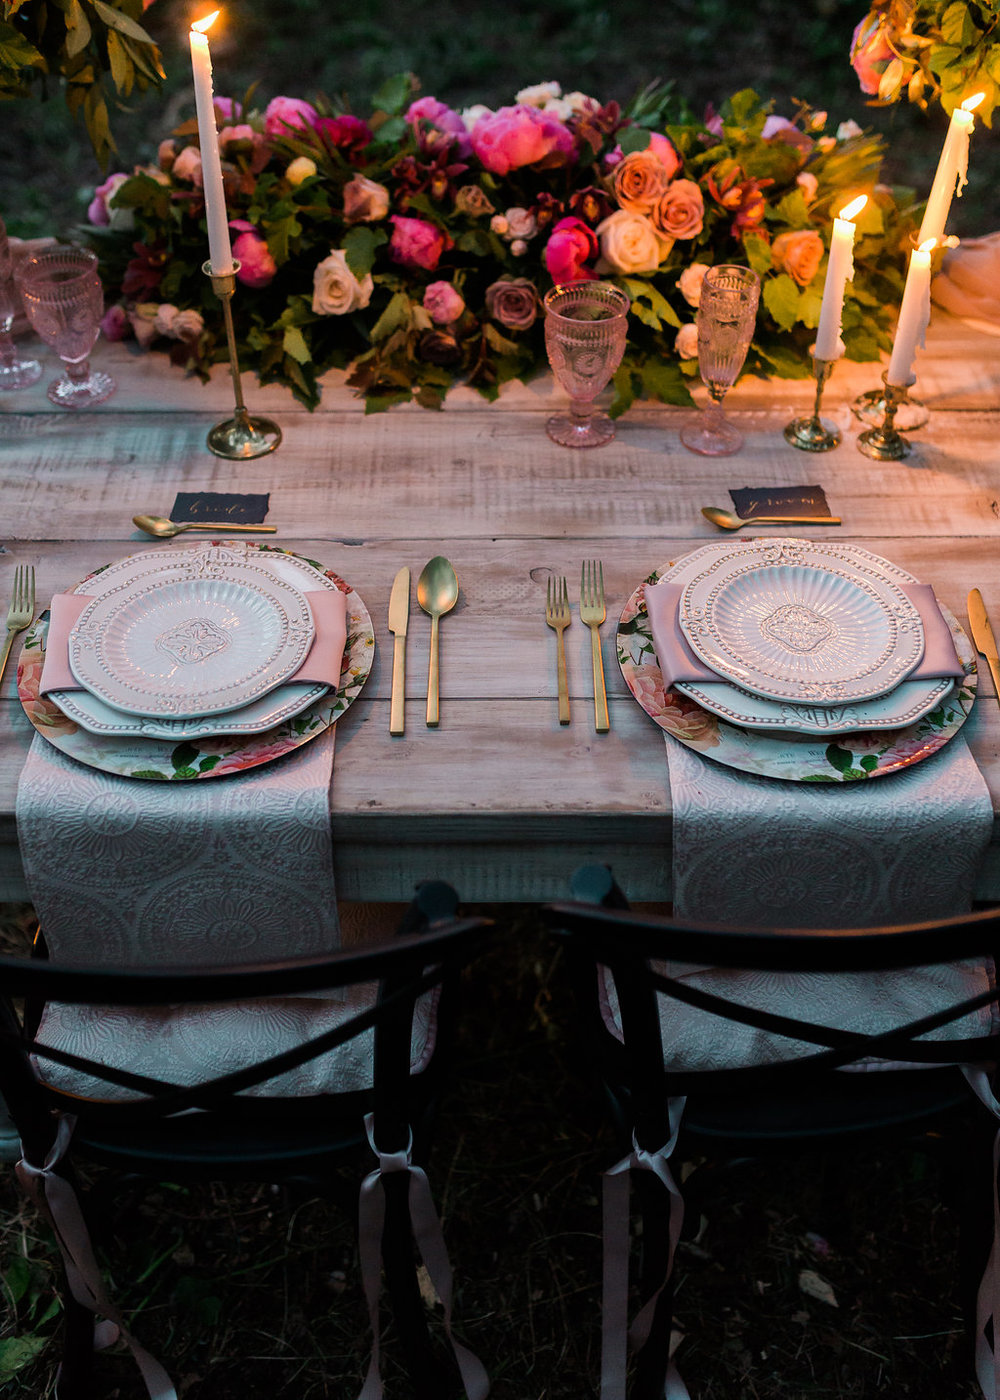 Get the look: gold candleholders, matte gold cutlery, floral charger plates, antique baroque plates, blush hobnail goblets and champagne flutes